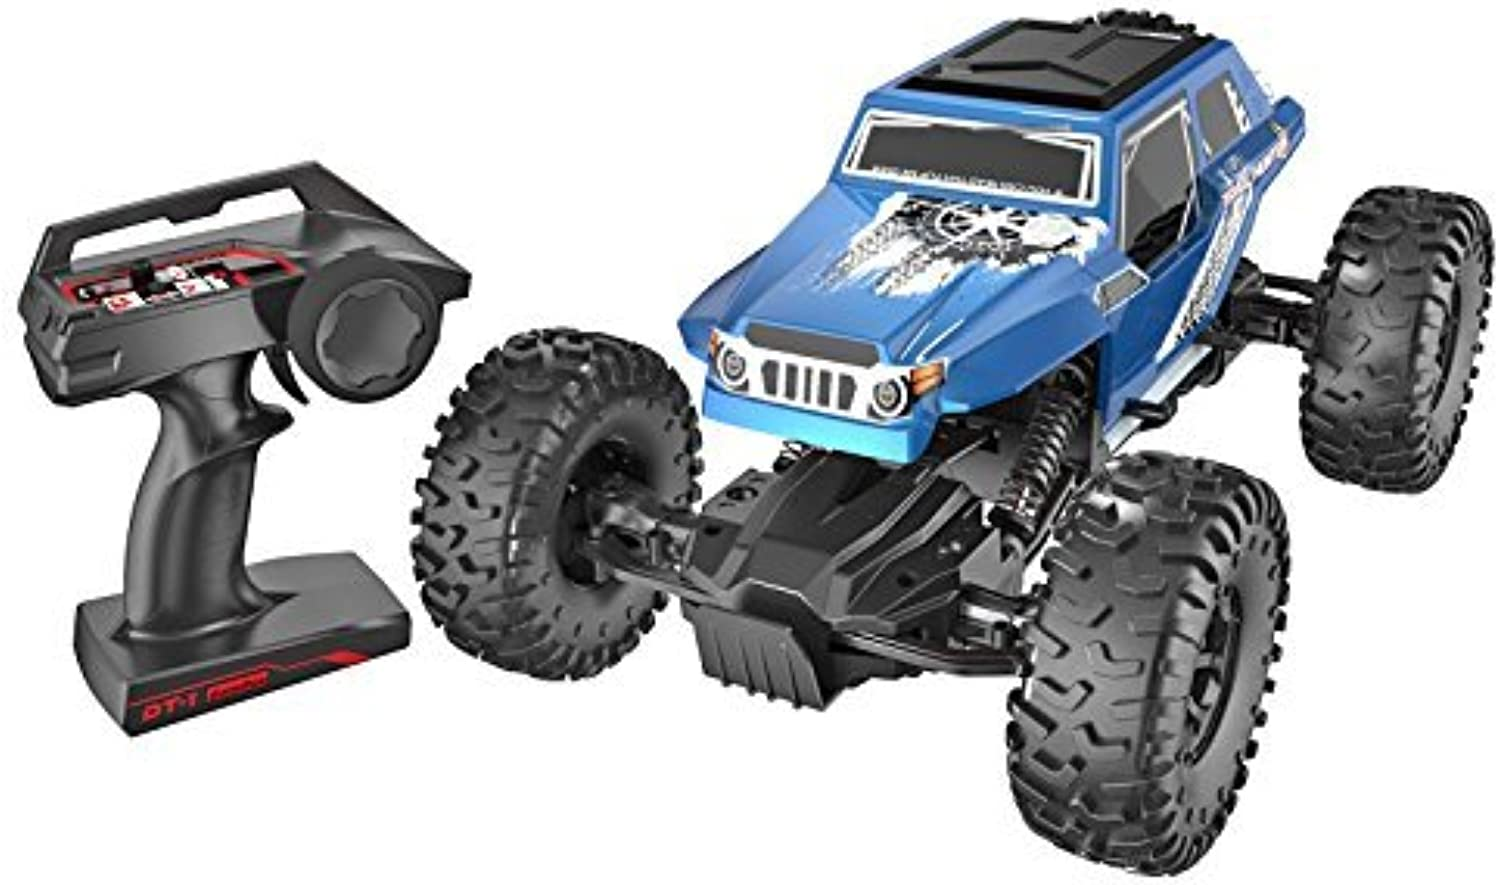 Danchee Trail Hunter 1 12 Scale Remote Control Rock Crawler Off Road Truck, blueee by danchee